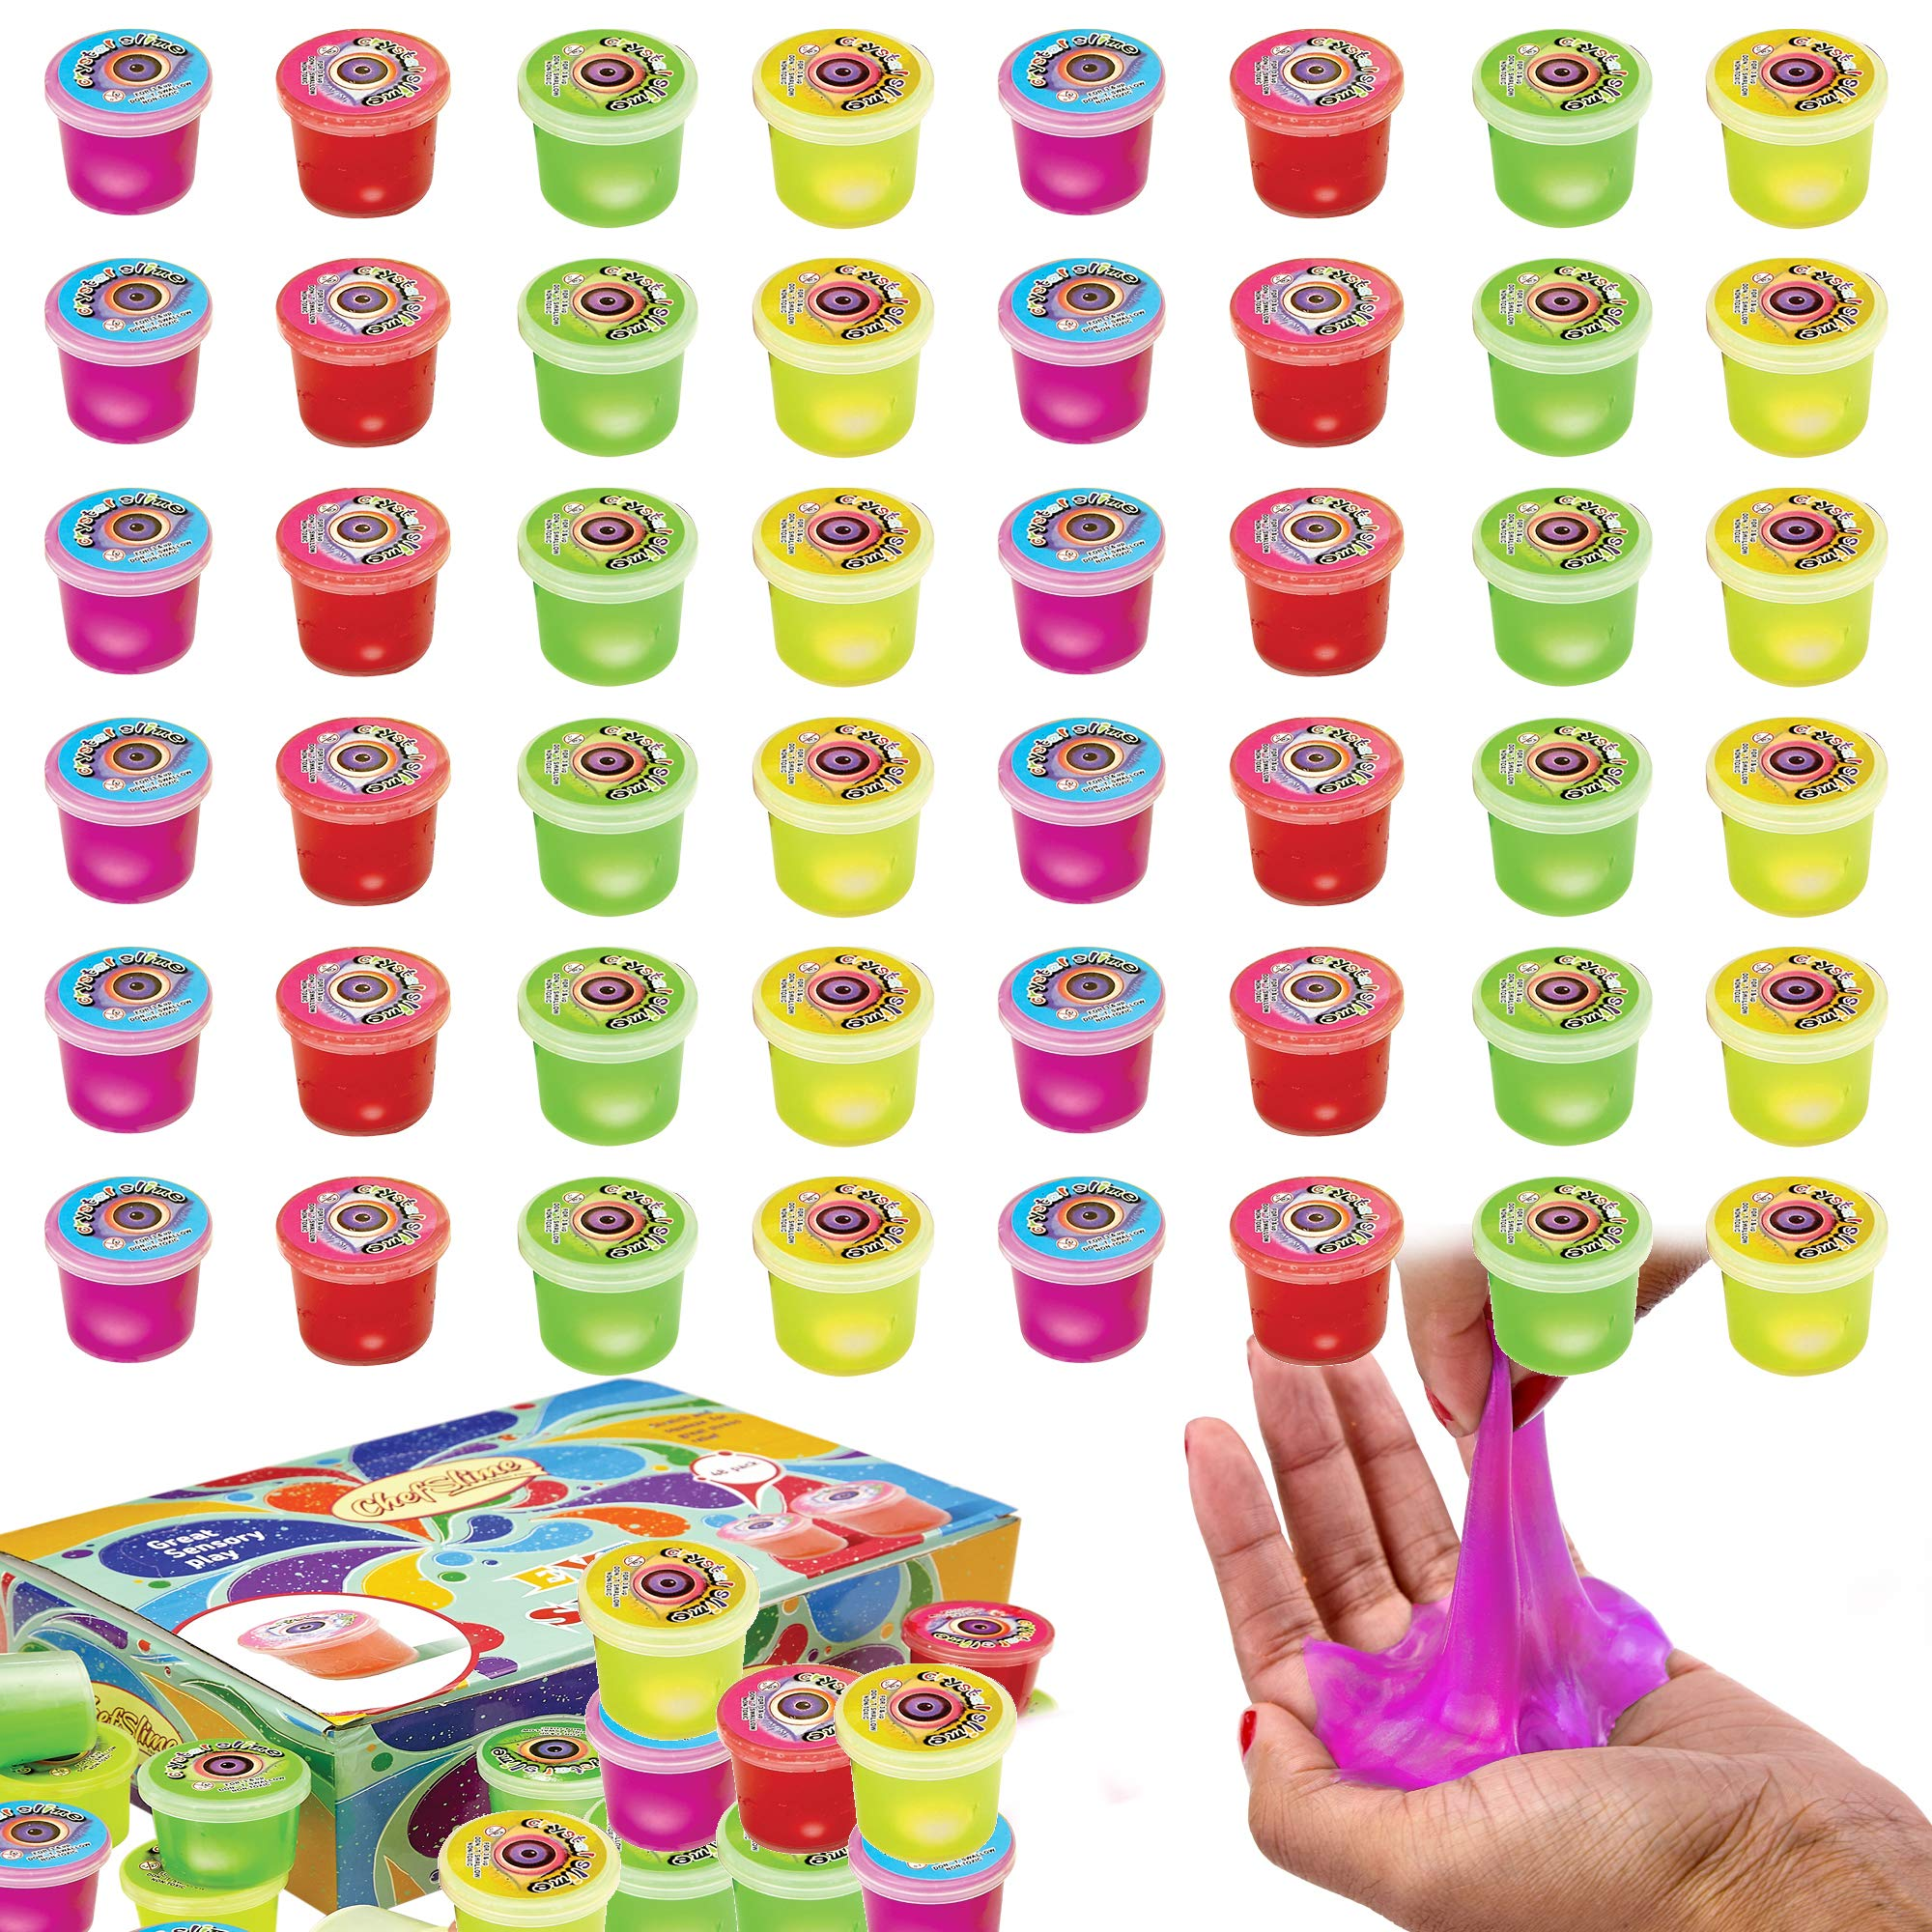 ChefSlime Eye Slime Cool Putty - Non Sticky, Stress & Anxiety Relief, Wet, Super Soft Sludge Toy with an Eye Ball inside - party favor for Kids and Adults - | JUMBO PACK of 48 PCS